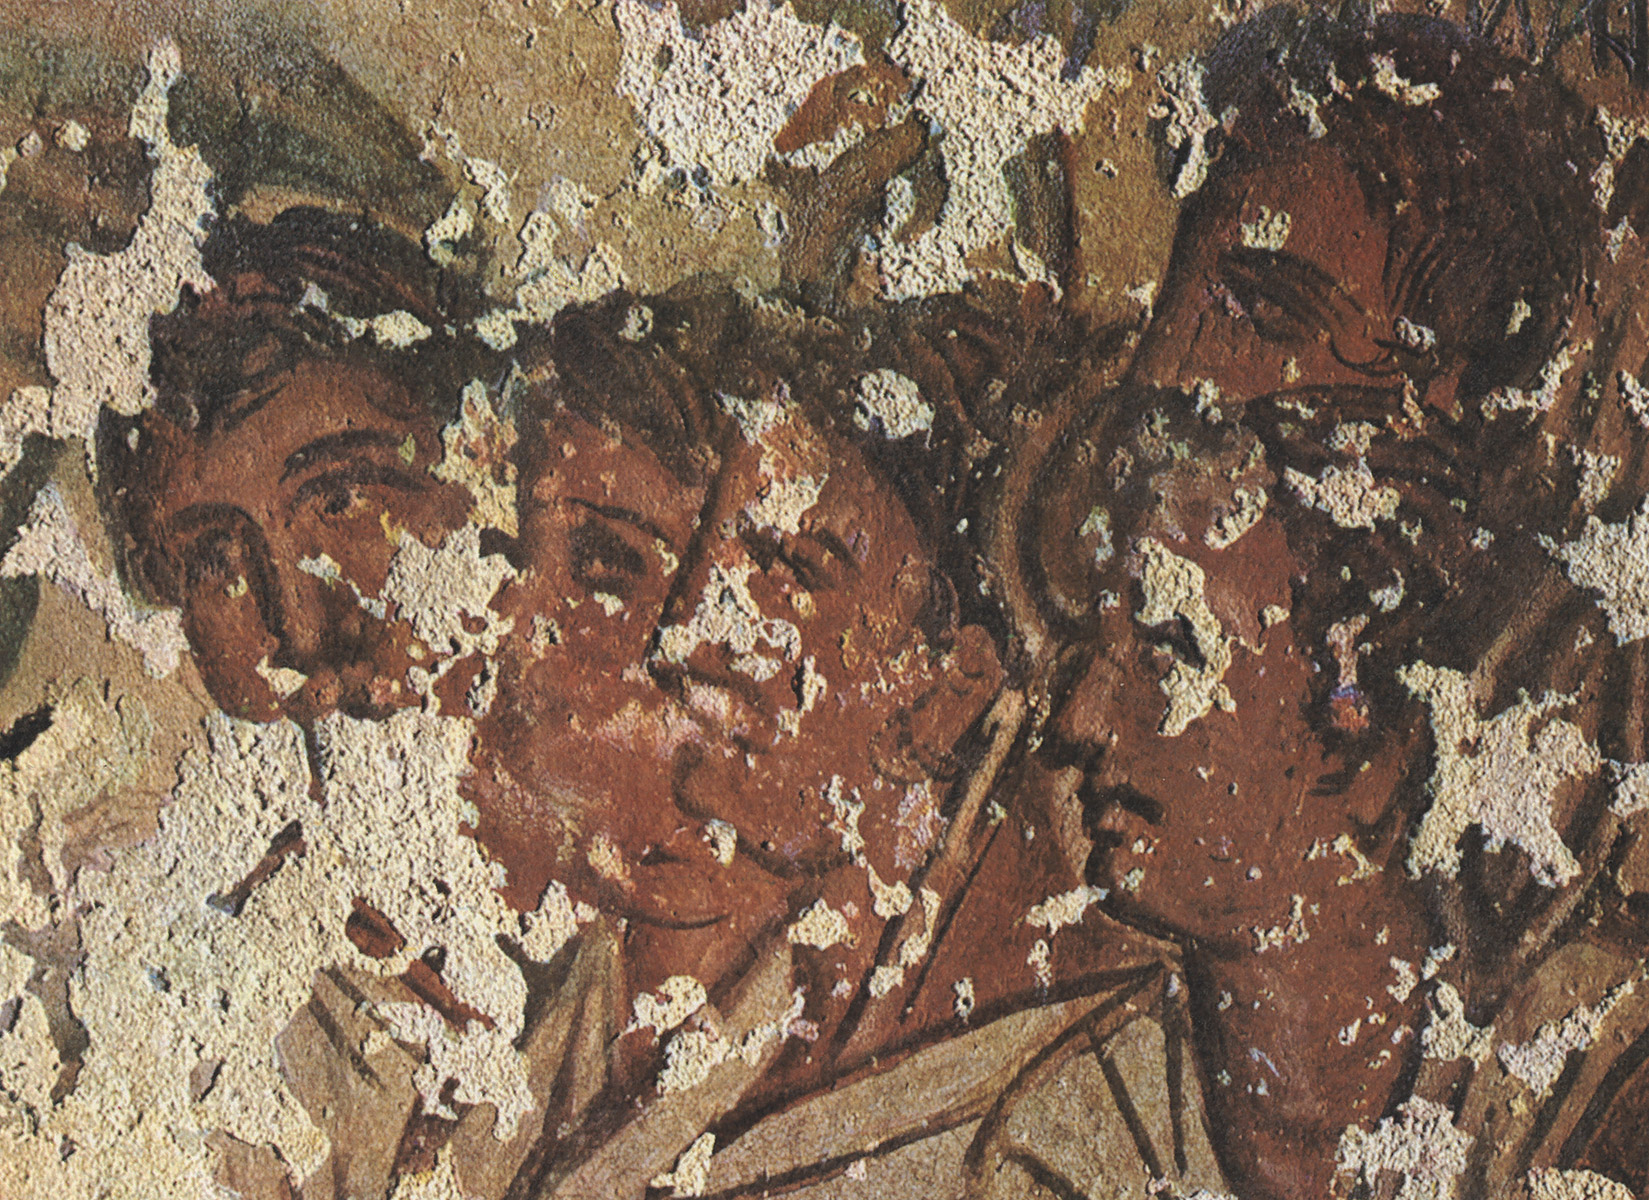 Procession, going to the afterlife. 1st century BCE. Tarquinia, Tomb of the Typhon